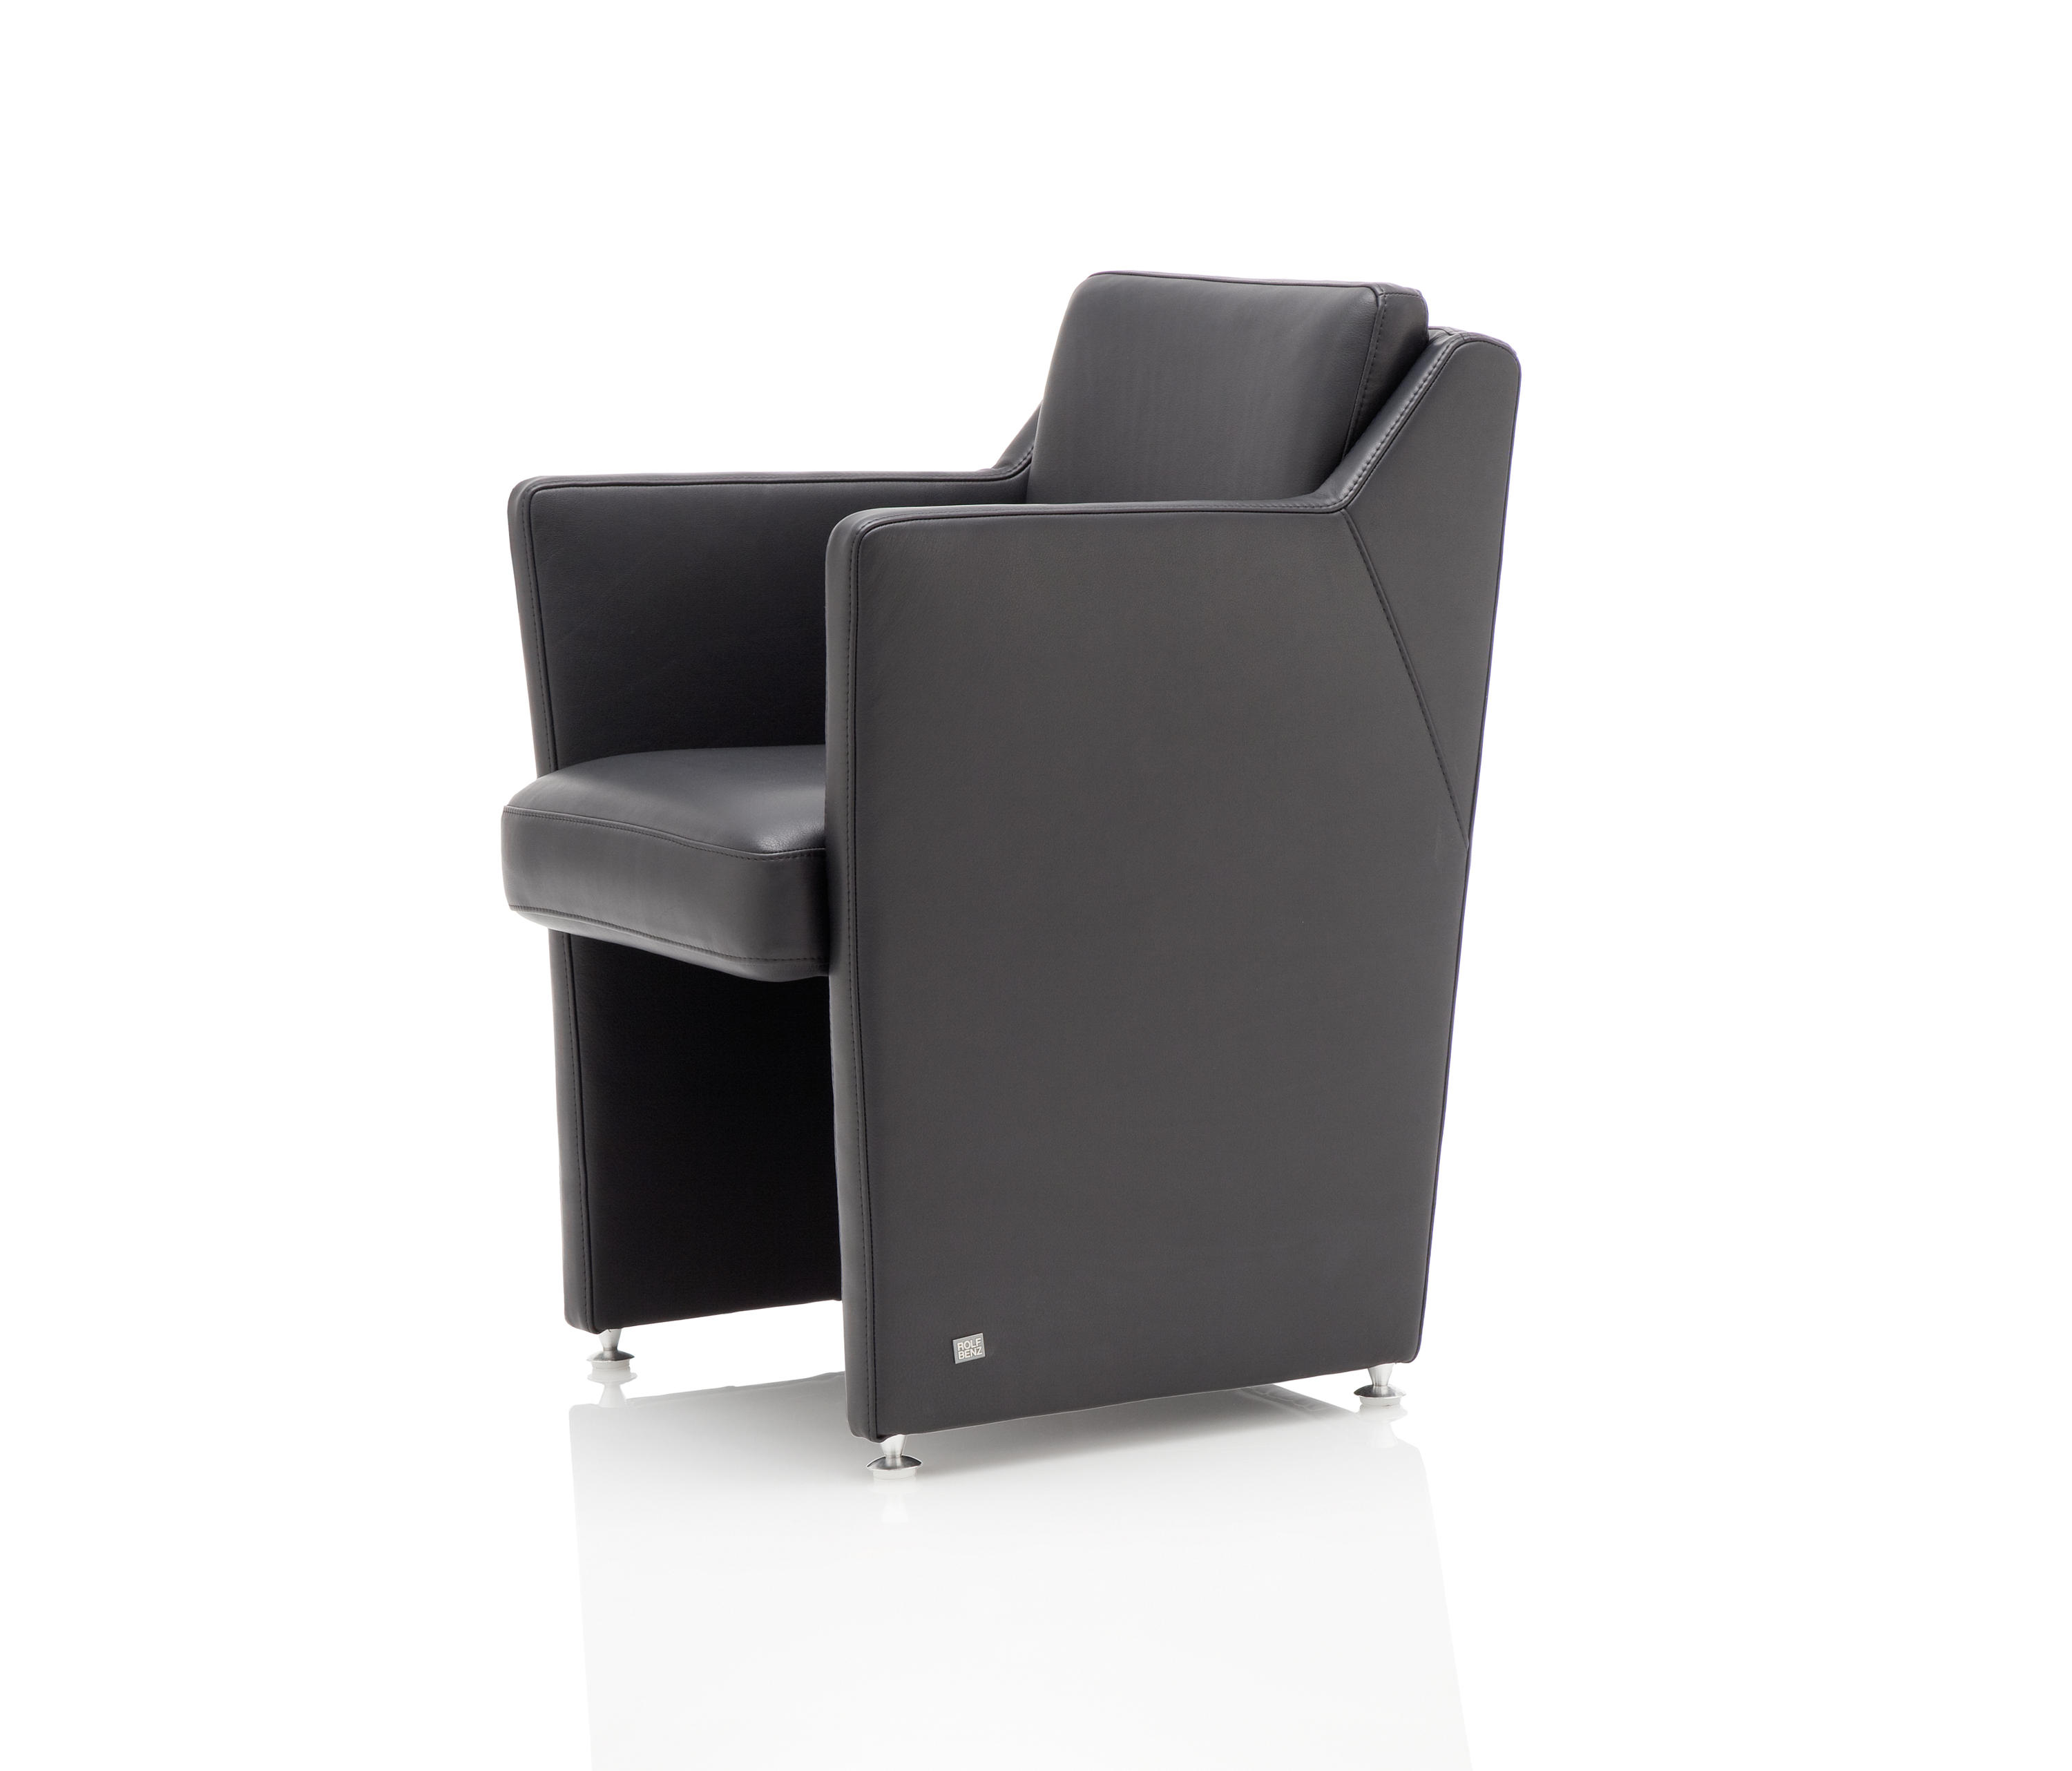 Rolf Benz Nova Rolf Benz 7100 Chairs From Rolf Benz Architonic